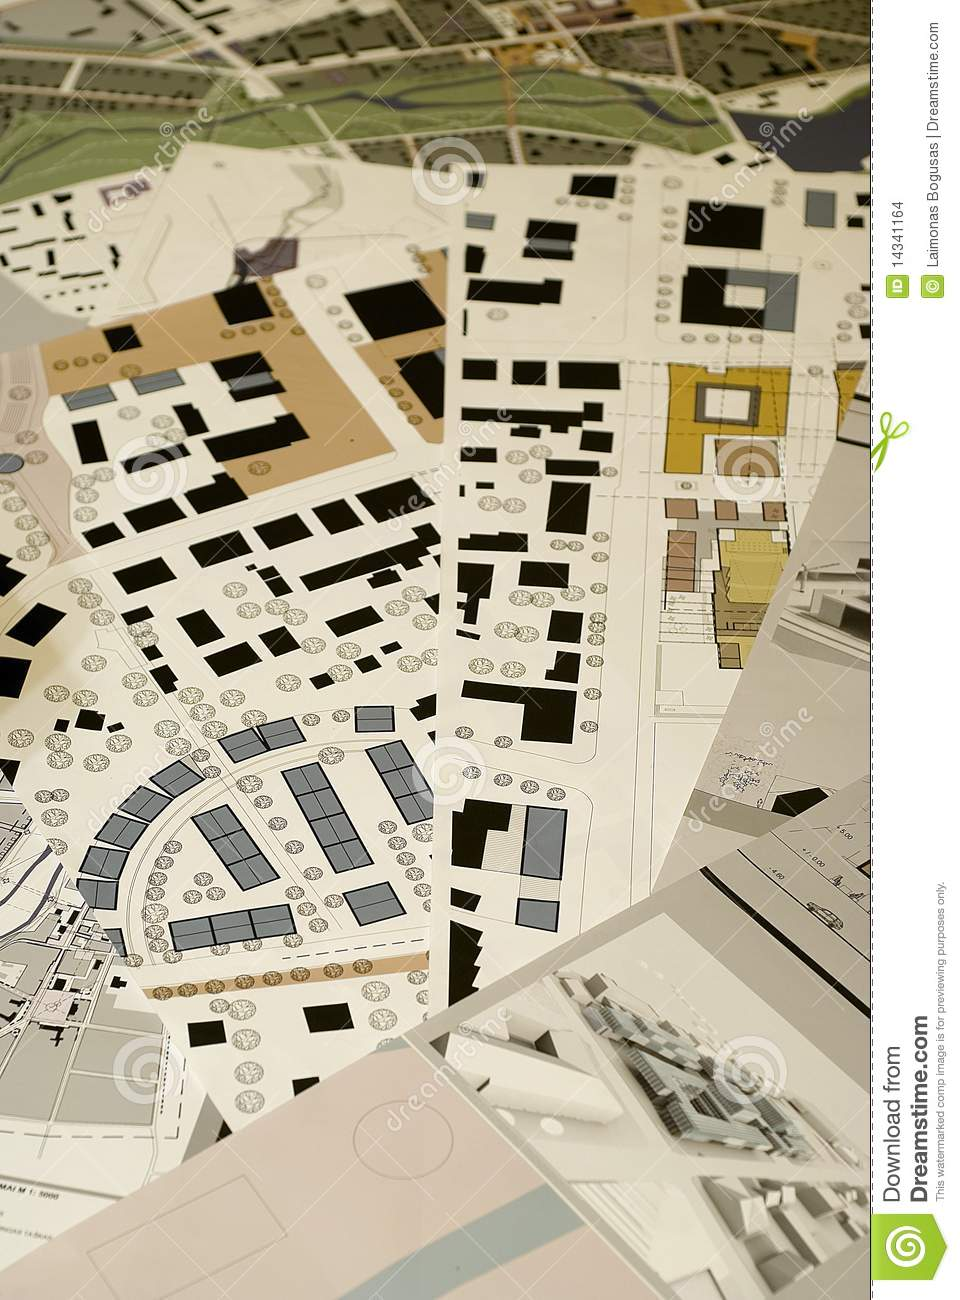 architectural drawings blueprints city planning stock images architectural blueprints